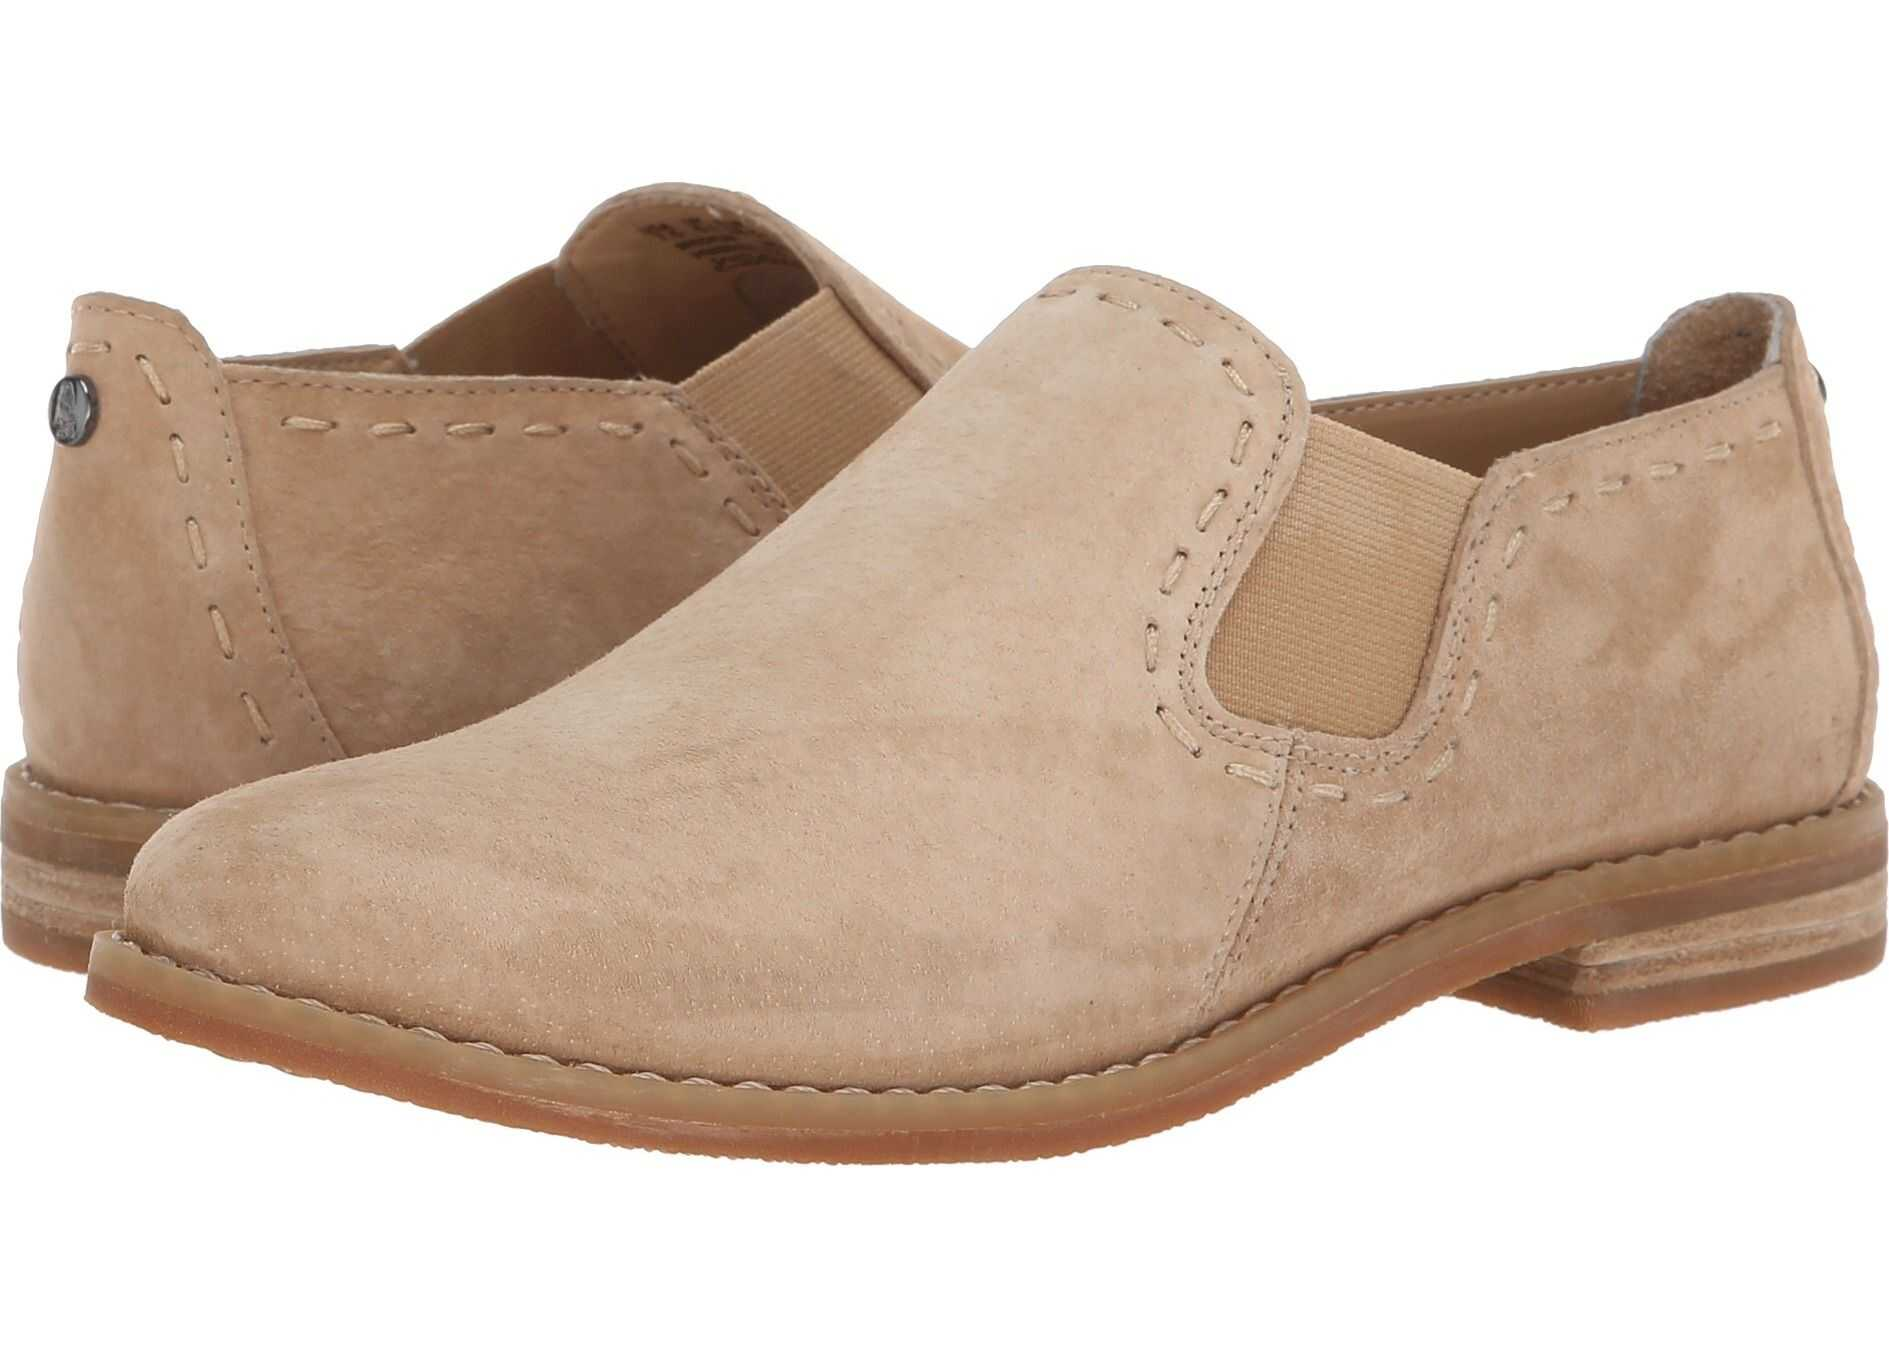 Hush Puppies Chardon Slip-On Chino Tan Suede